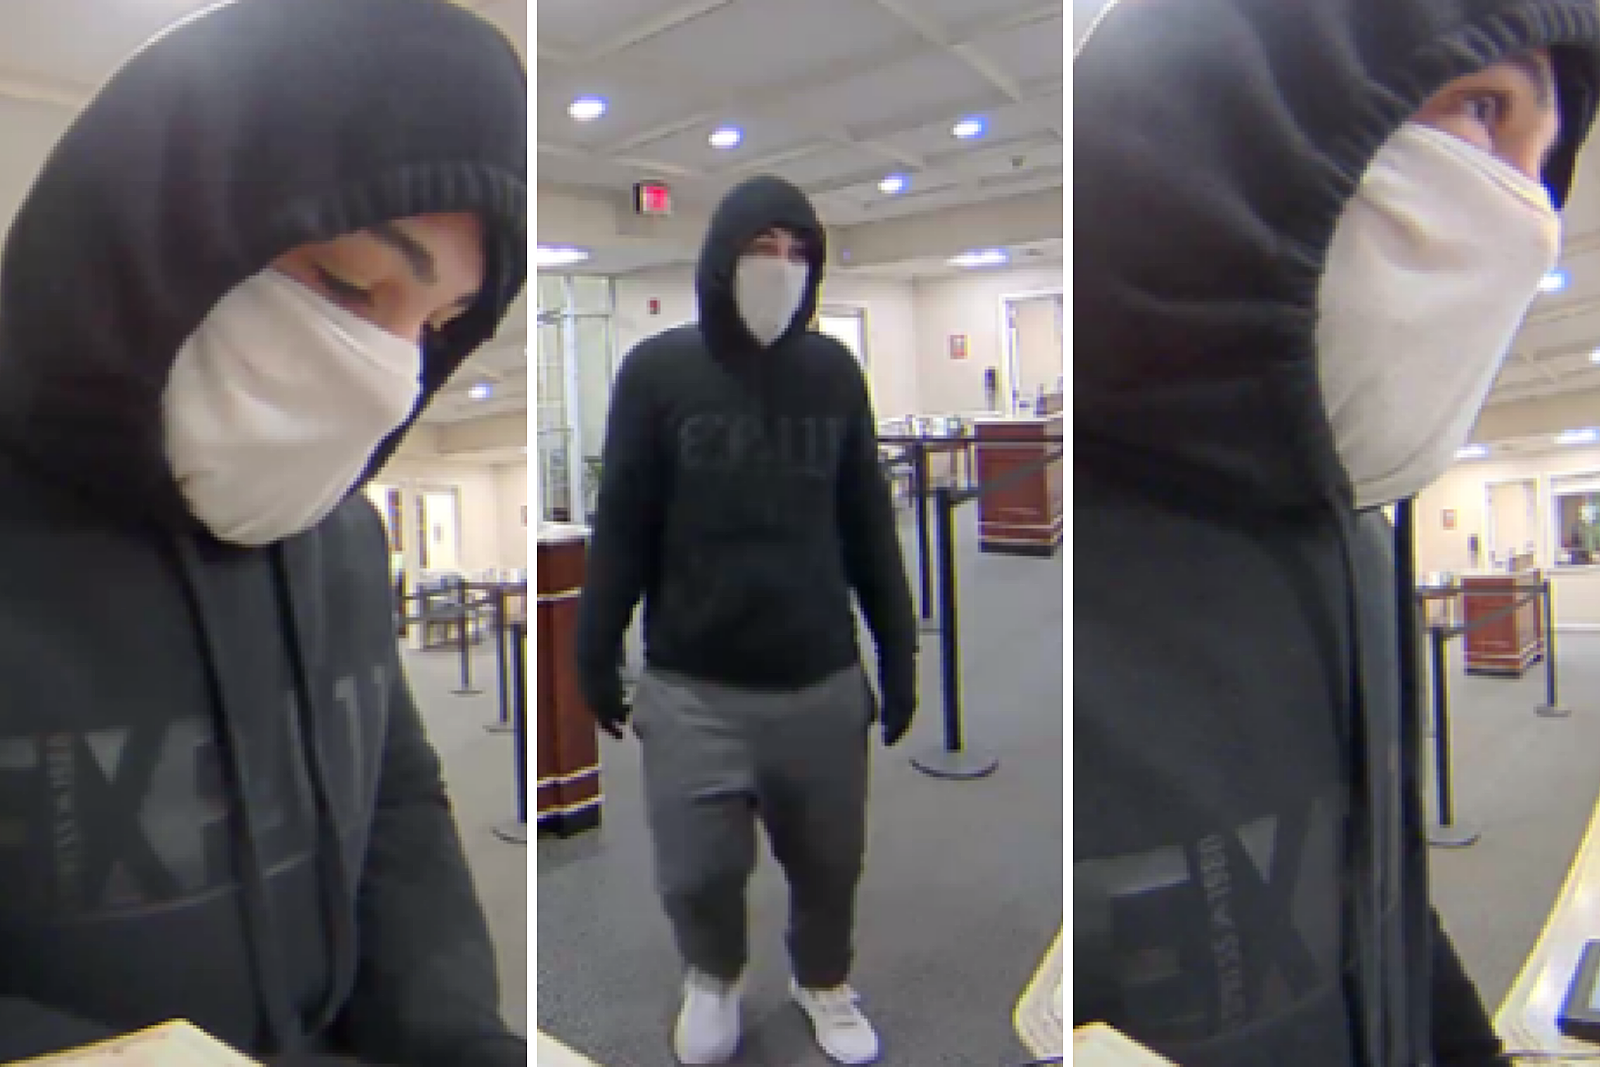 Fall River Police Searching for Bank Robbery Suspect